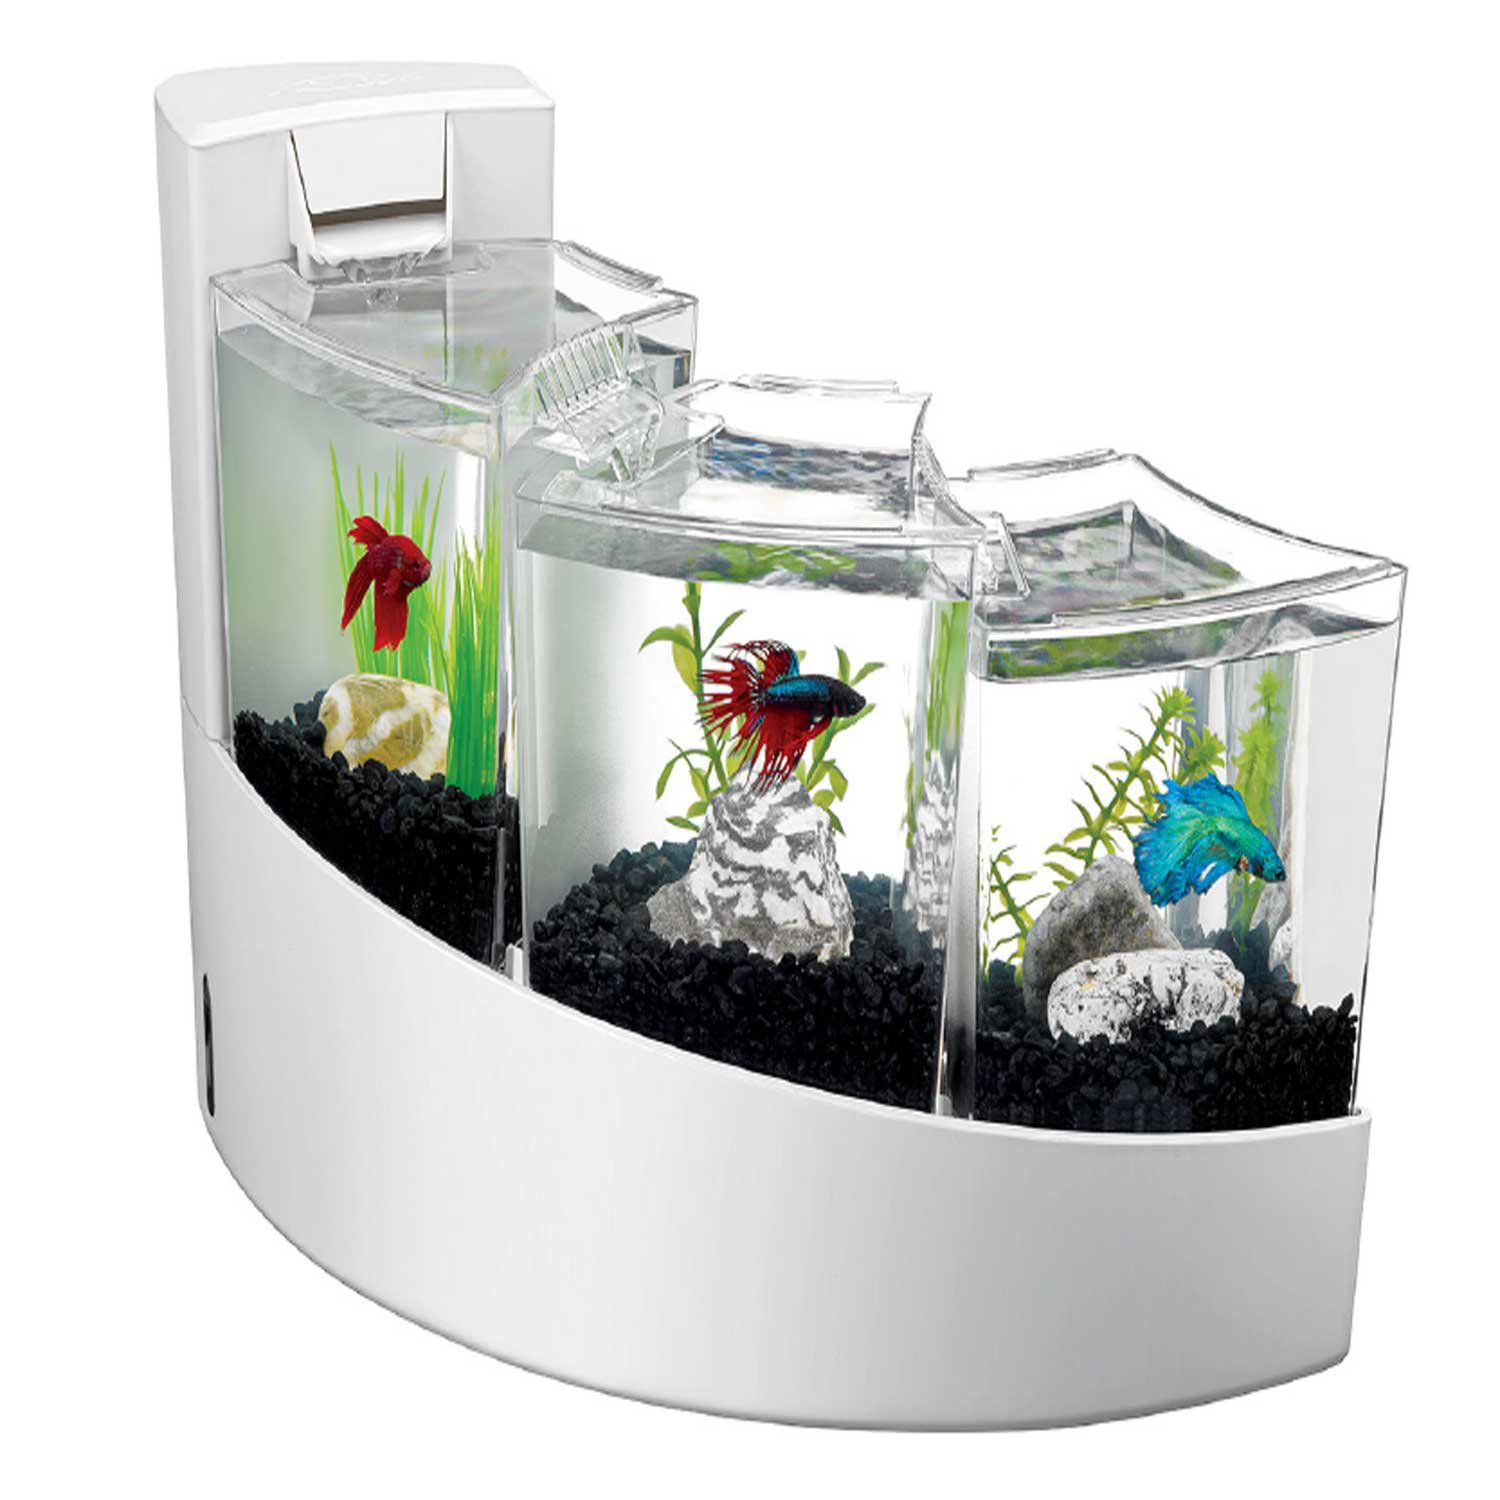 Aqueon betta falls aquarium kit in white fish aquariums for Aqueon fish tank